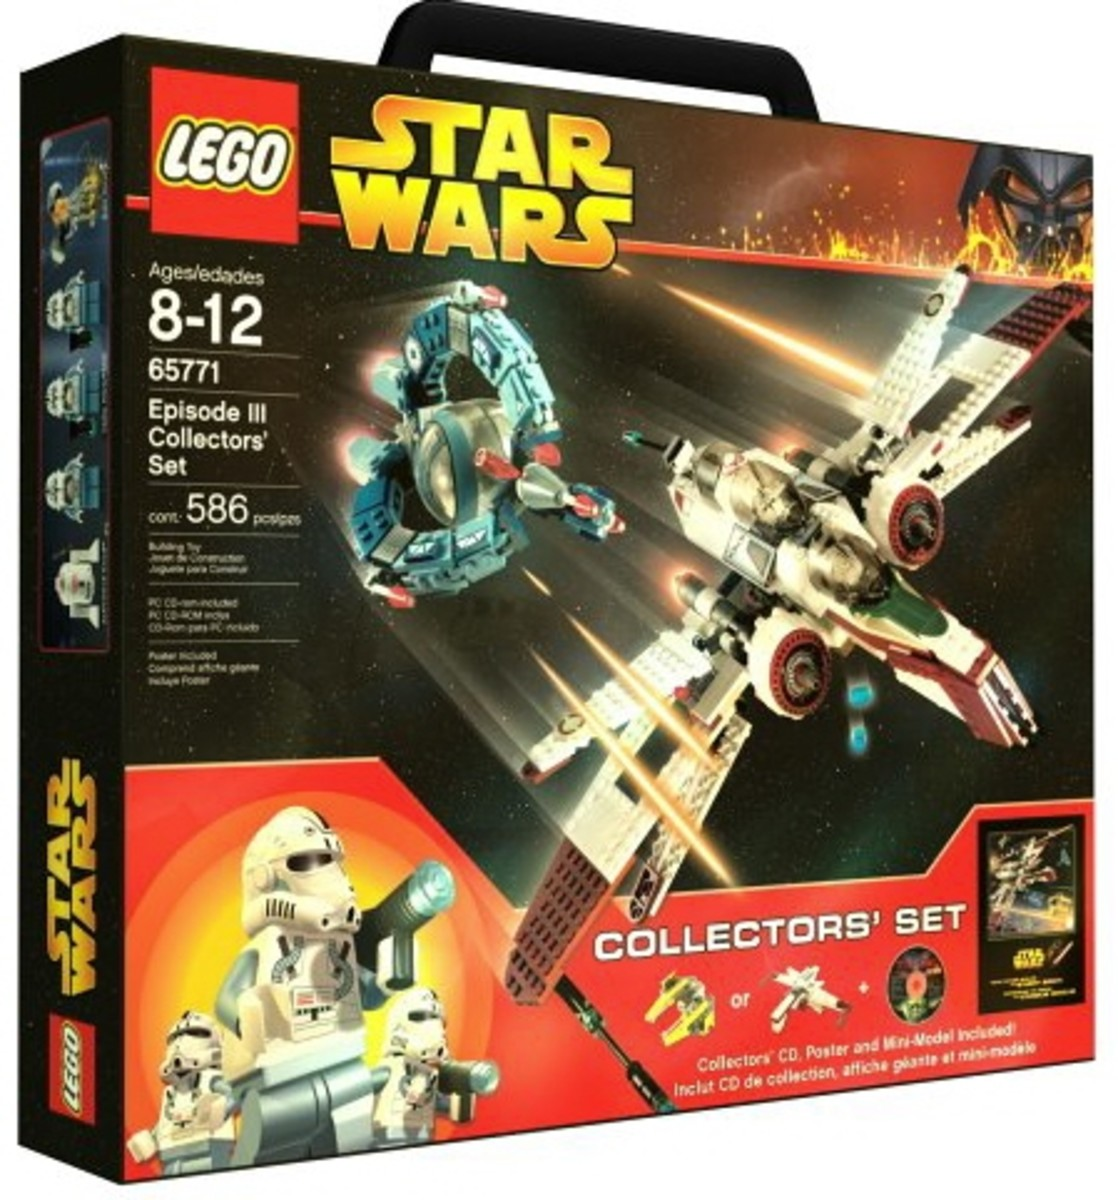 LEGO Star Wars Episode III Collector's Set 65771 Box